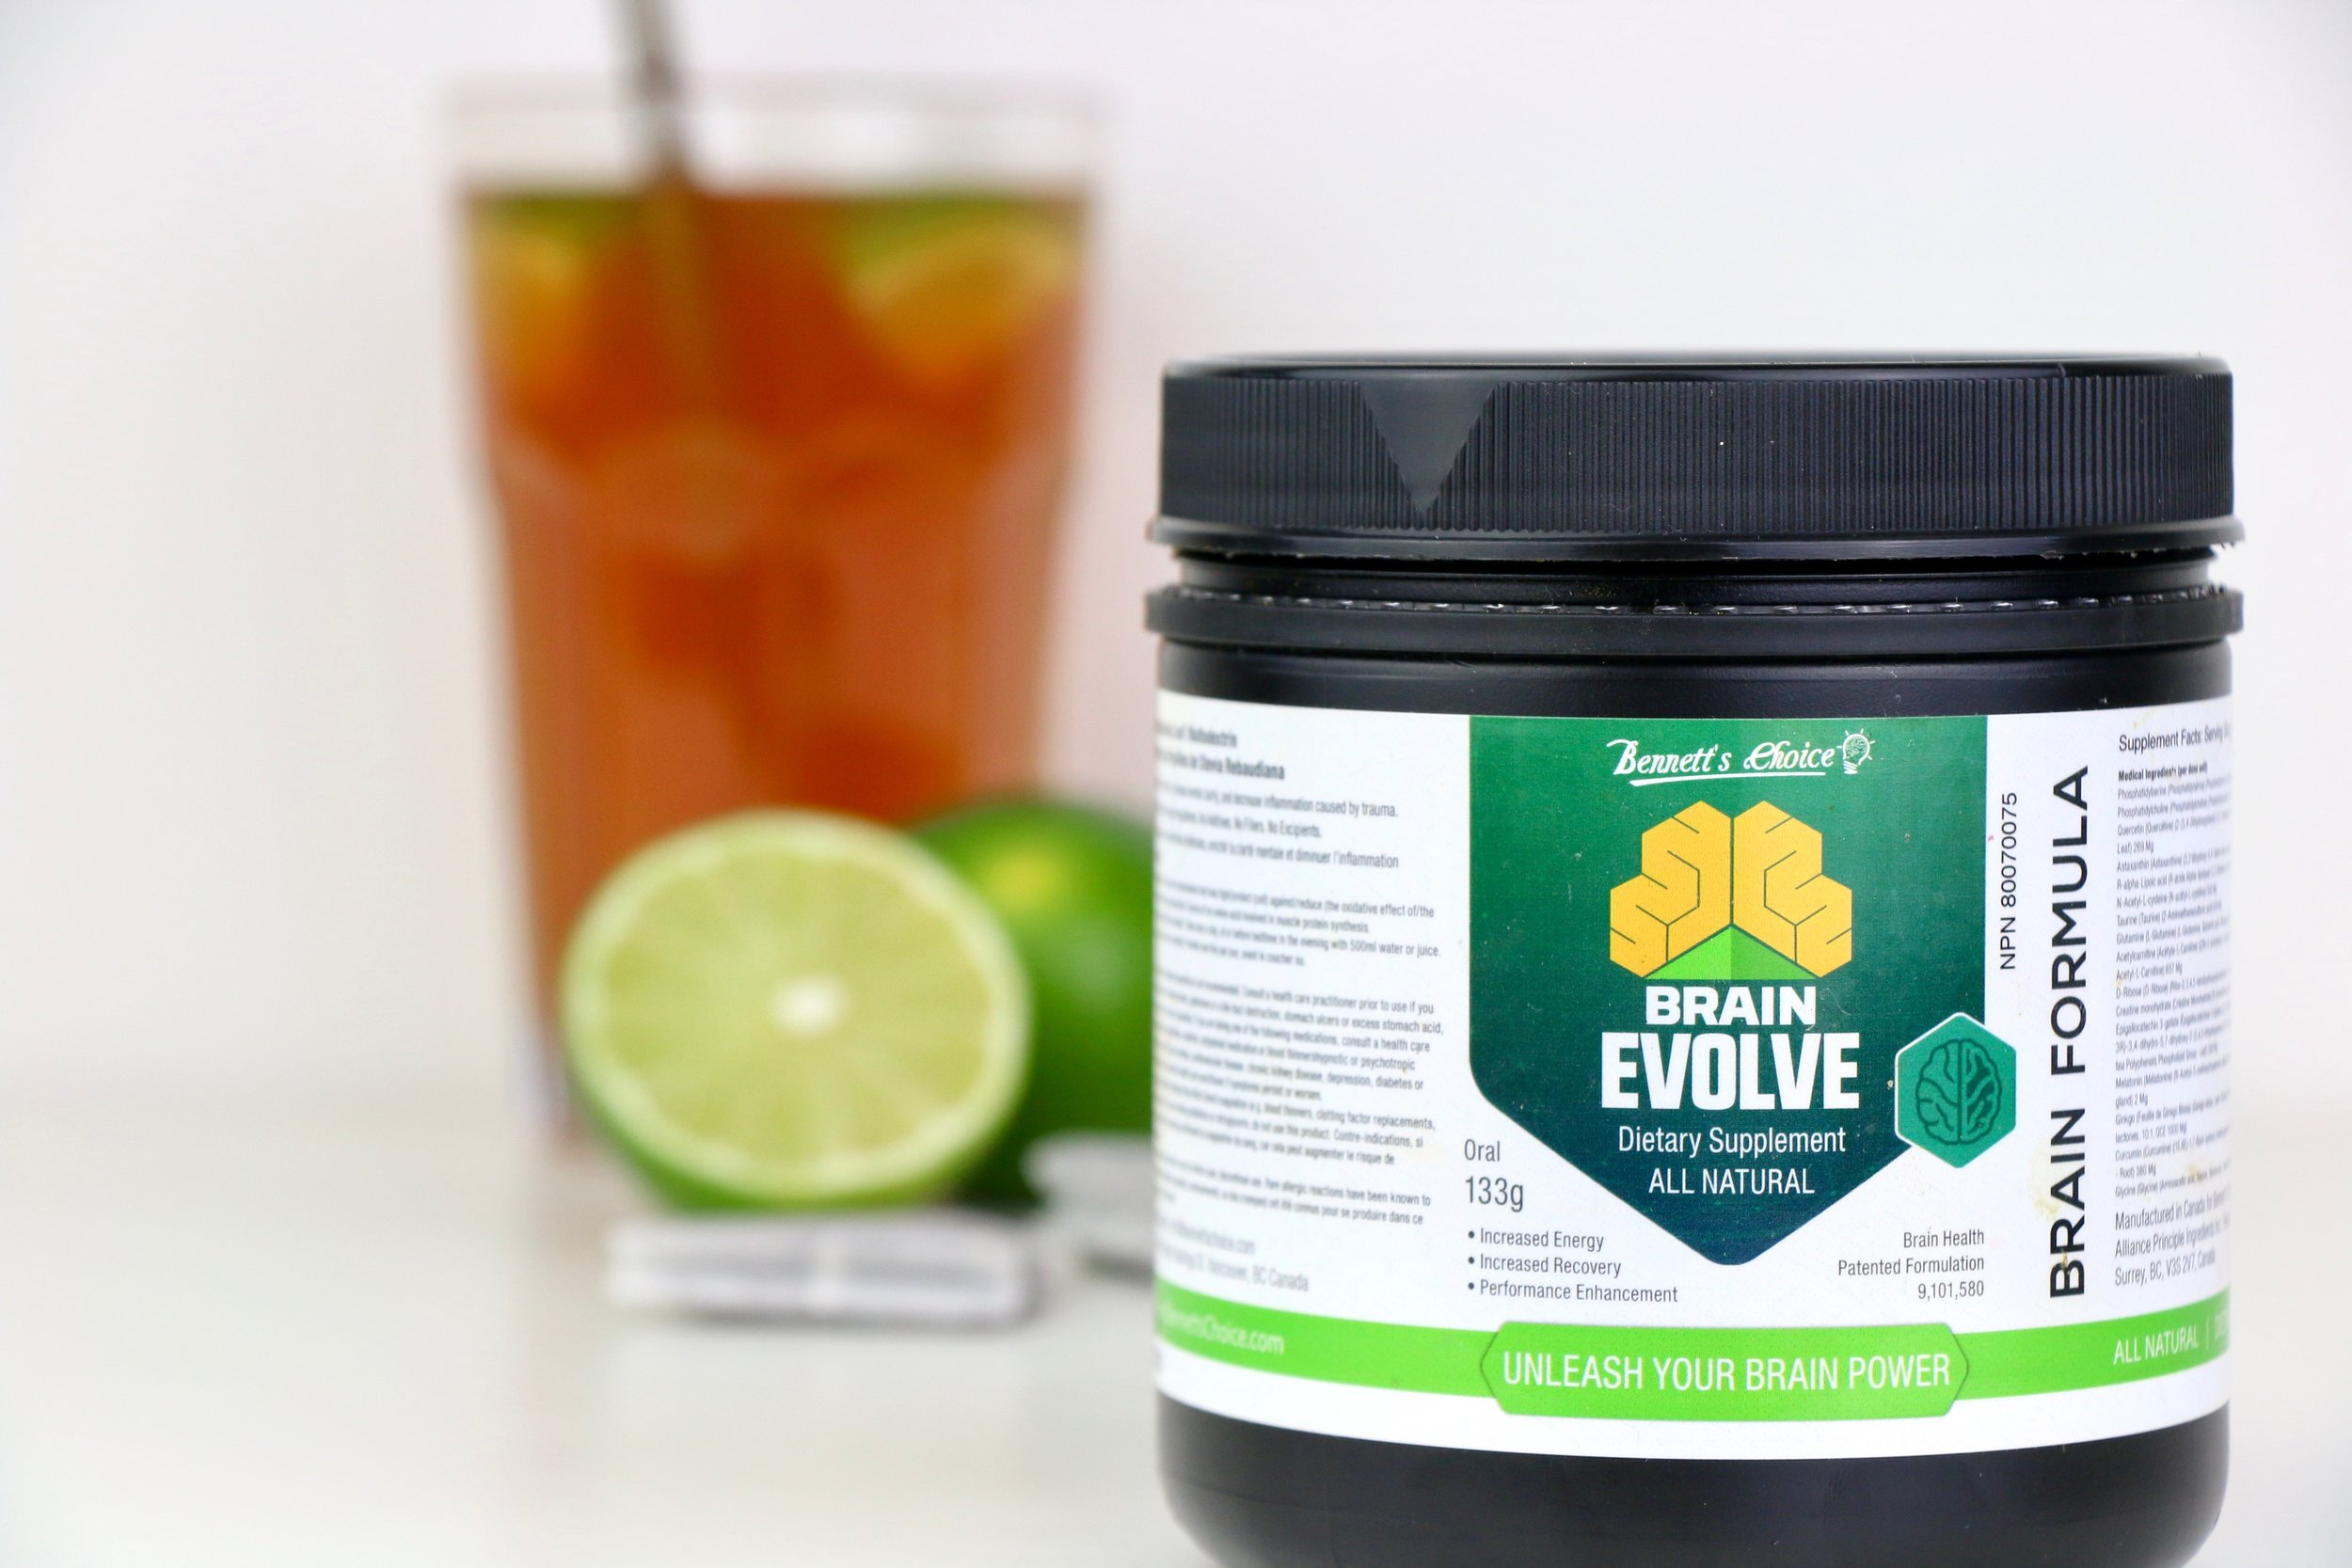 Empower Brain Energy - Promote Hormone Balance - Empower Brain Energy - Increase Mental Clari  ty!   Brain Evolve is the first US patented supplement that has demonstrated efficacy in reducing post concussion symptoms. It has received an approval from Health Canada and is NSF Certified for Sport as a concussion treatment product. $49.99 -  USE PROMOCODE 'READYTONOURISH' for 10% OFF